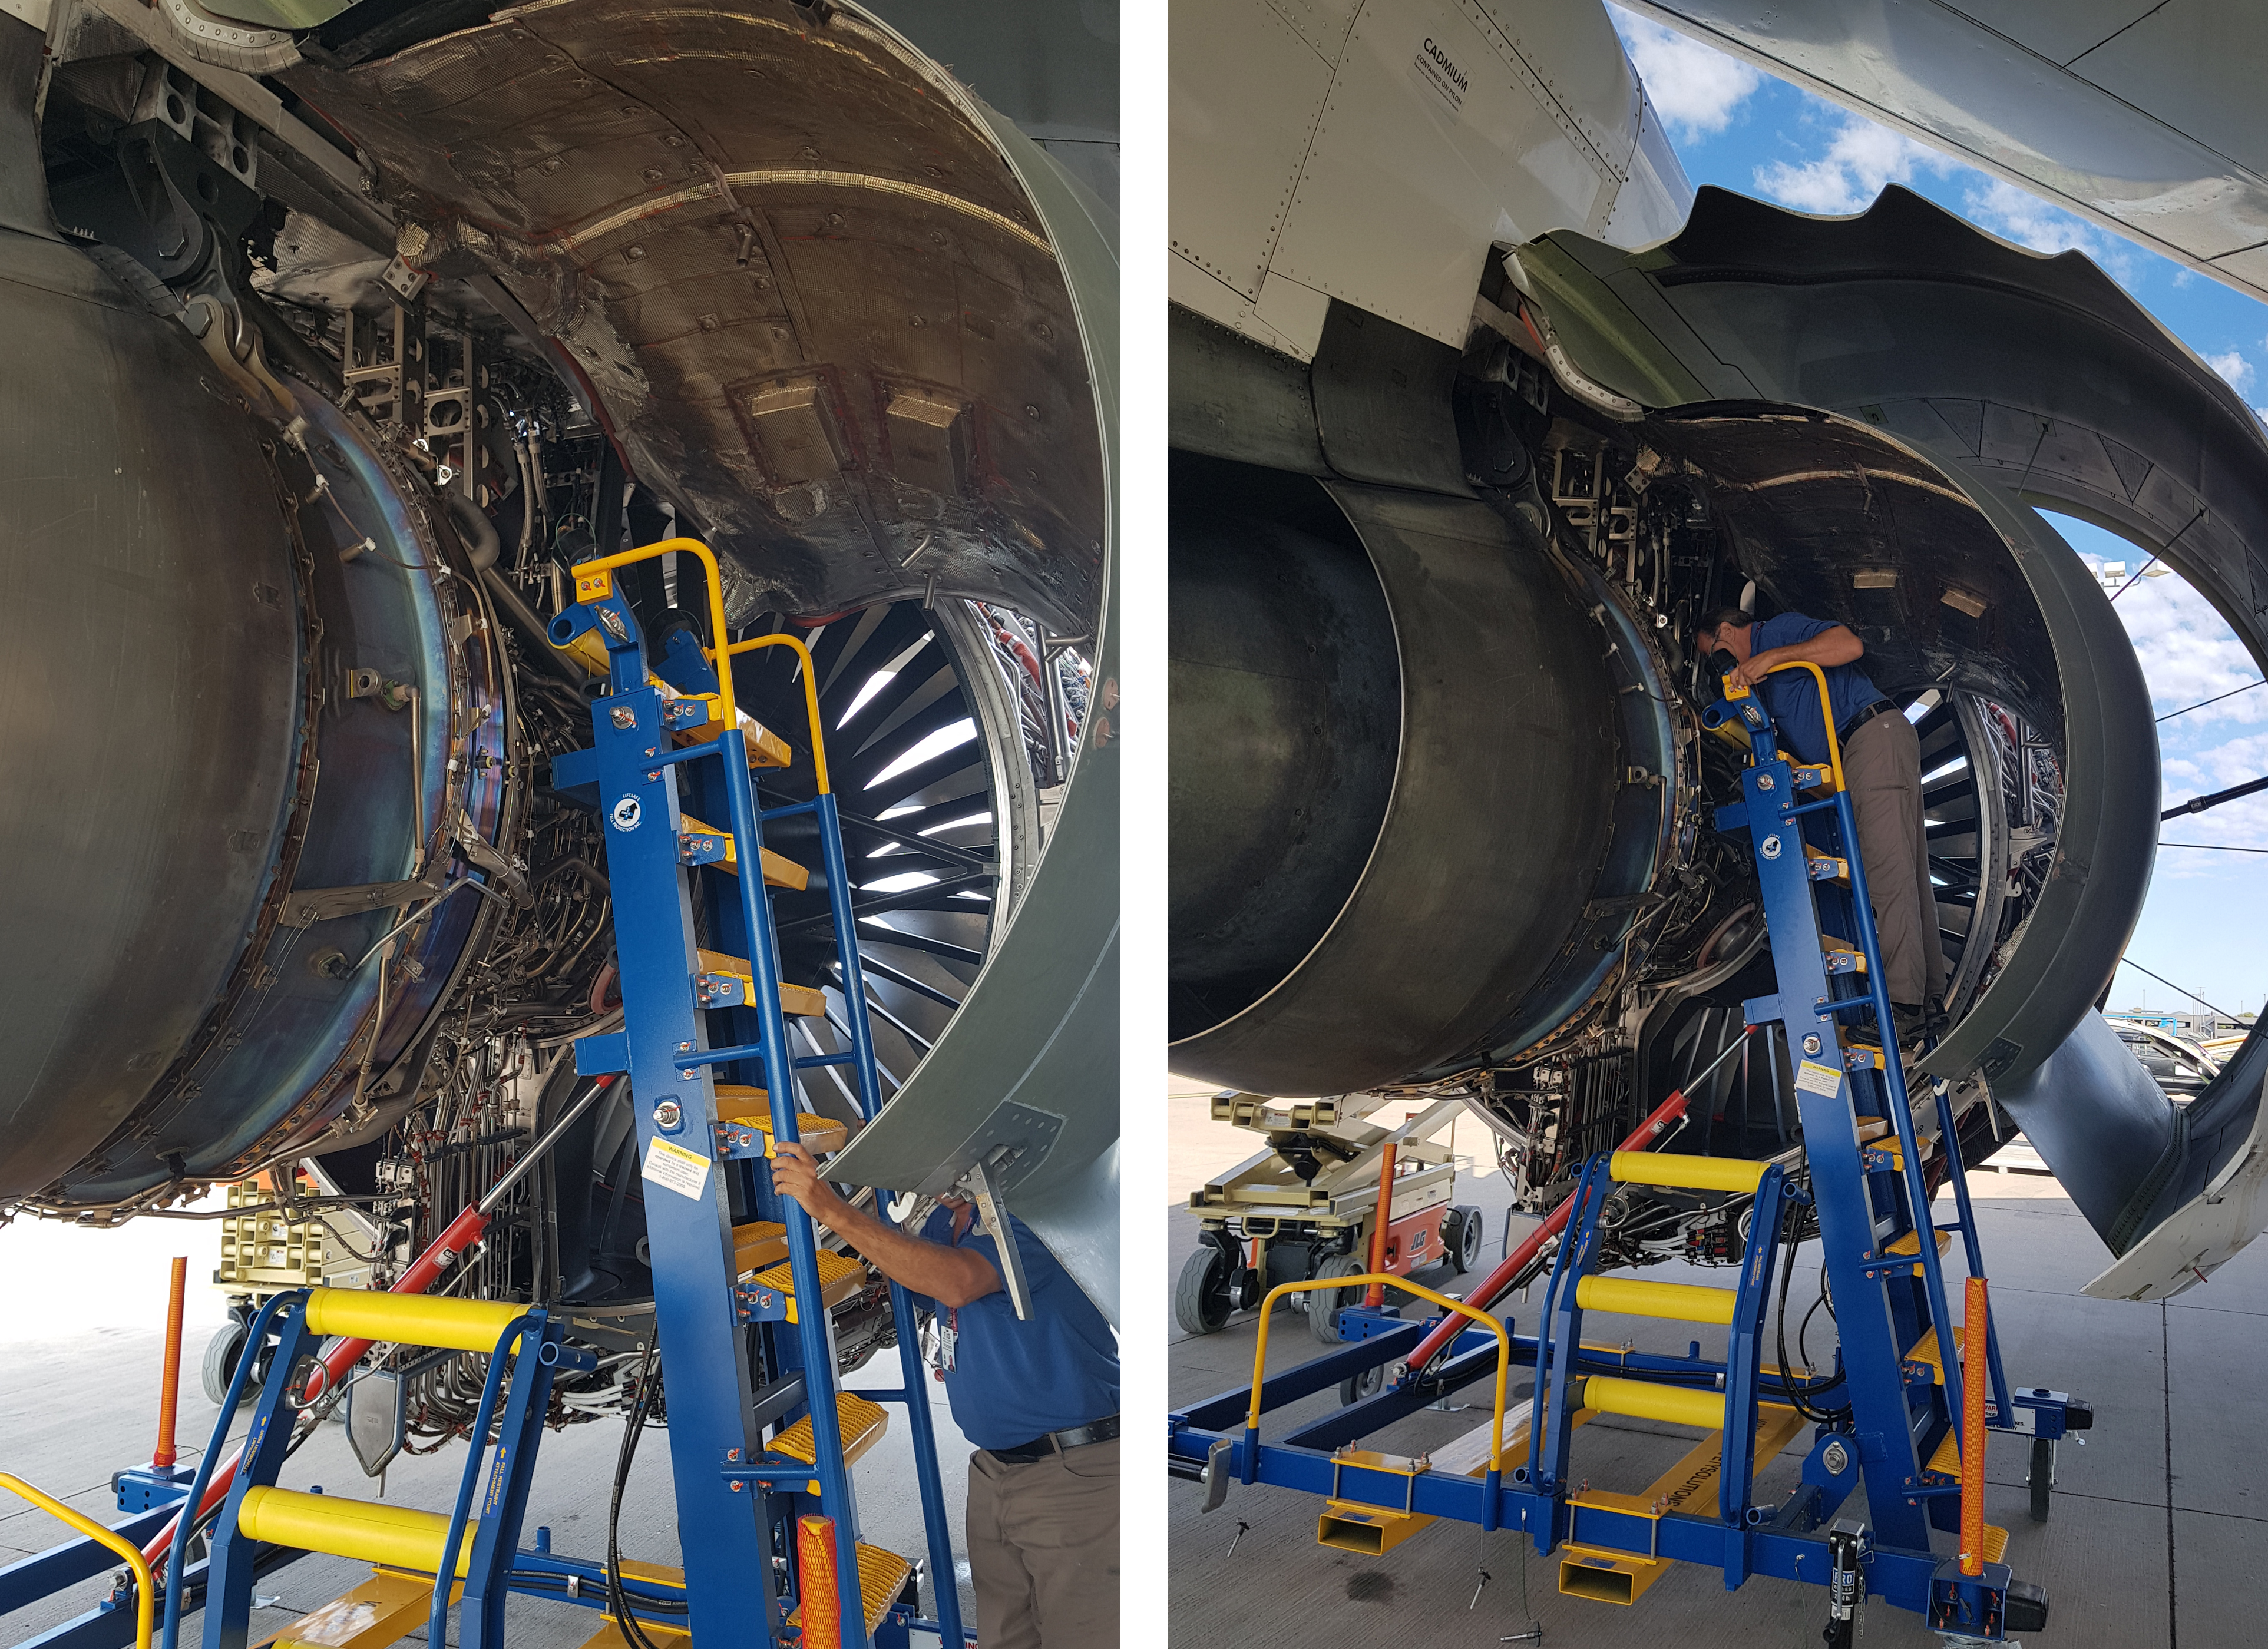 Engine Access Stand and Rolls-Royce IntelligentEngine